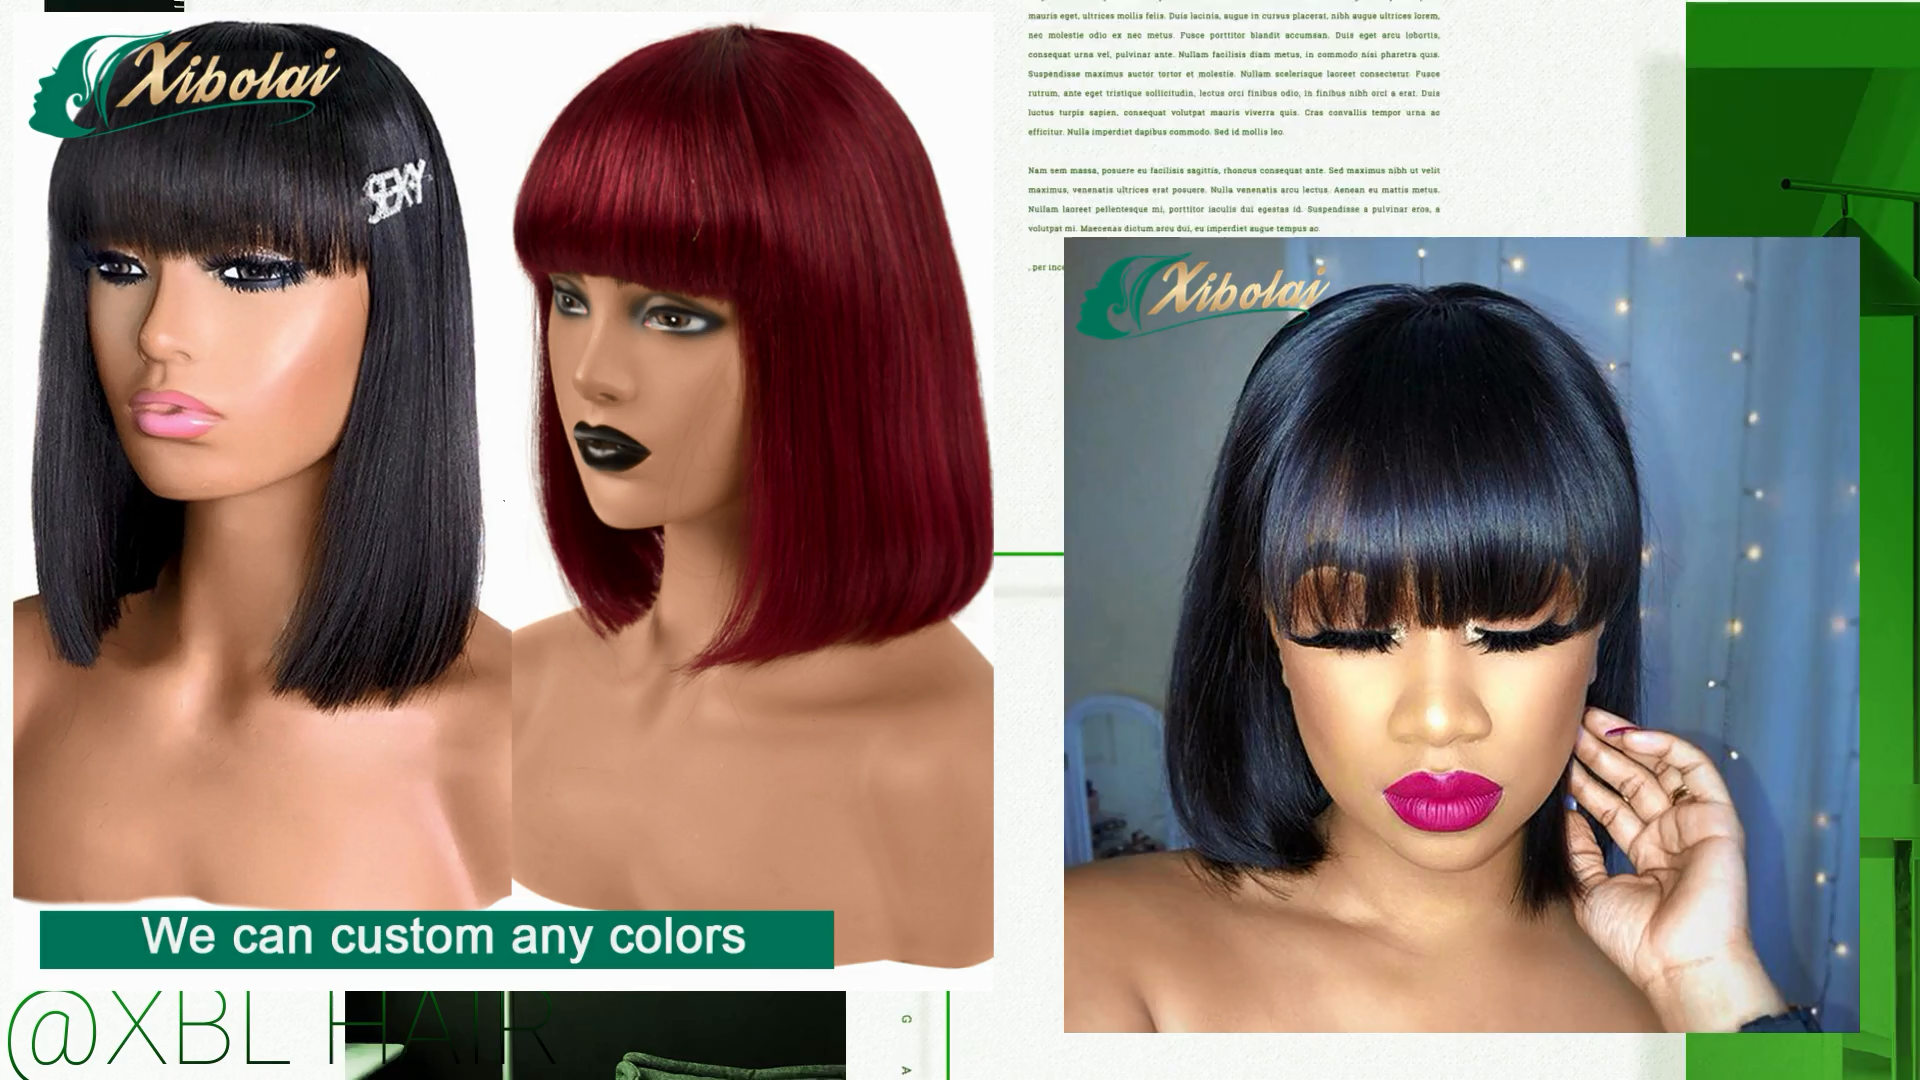 JcXBL 100% Machine made no lace virgin cuticle aligned hair wigs,8-16'' black straight short bob wigs for black women